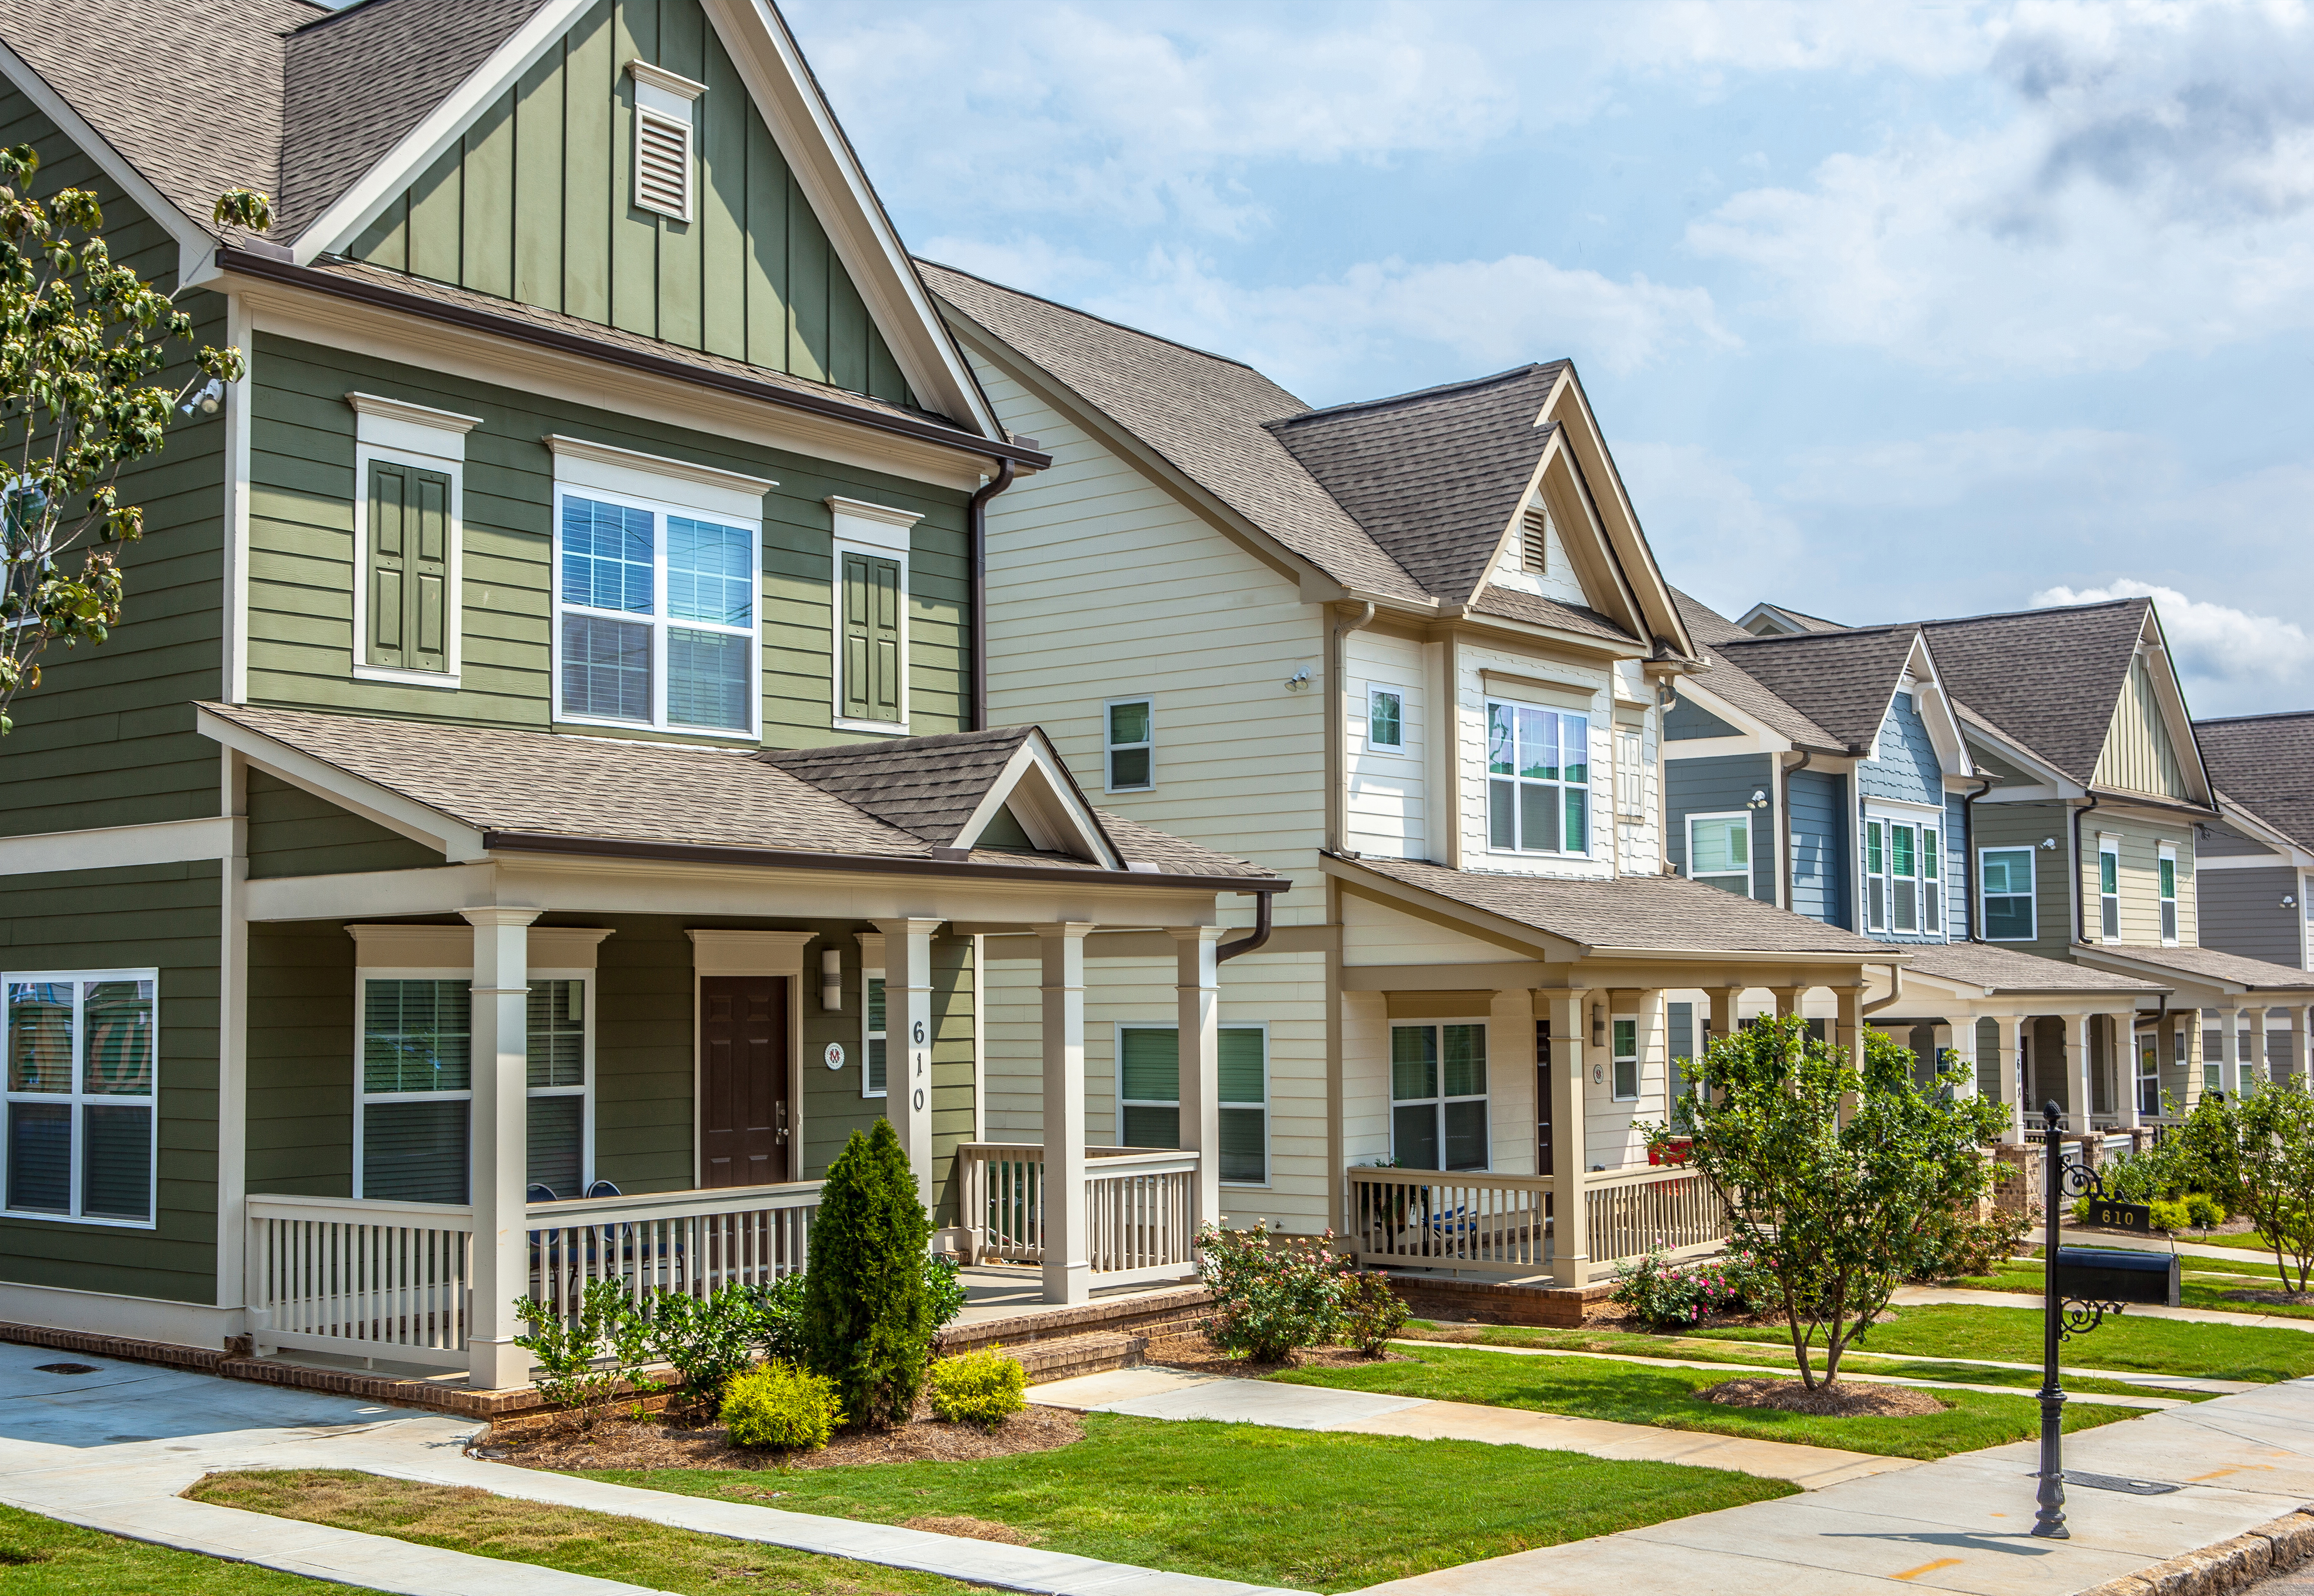 A photo of homes comparable to those forthcoming in Marietta by the same builder.